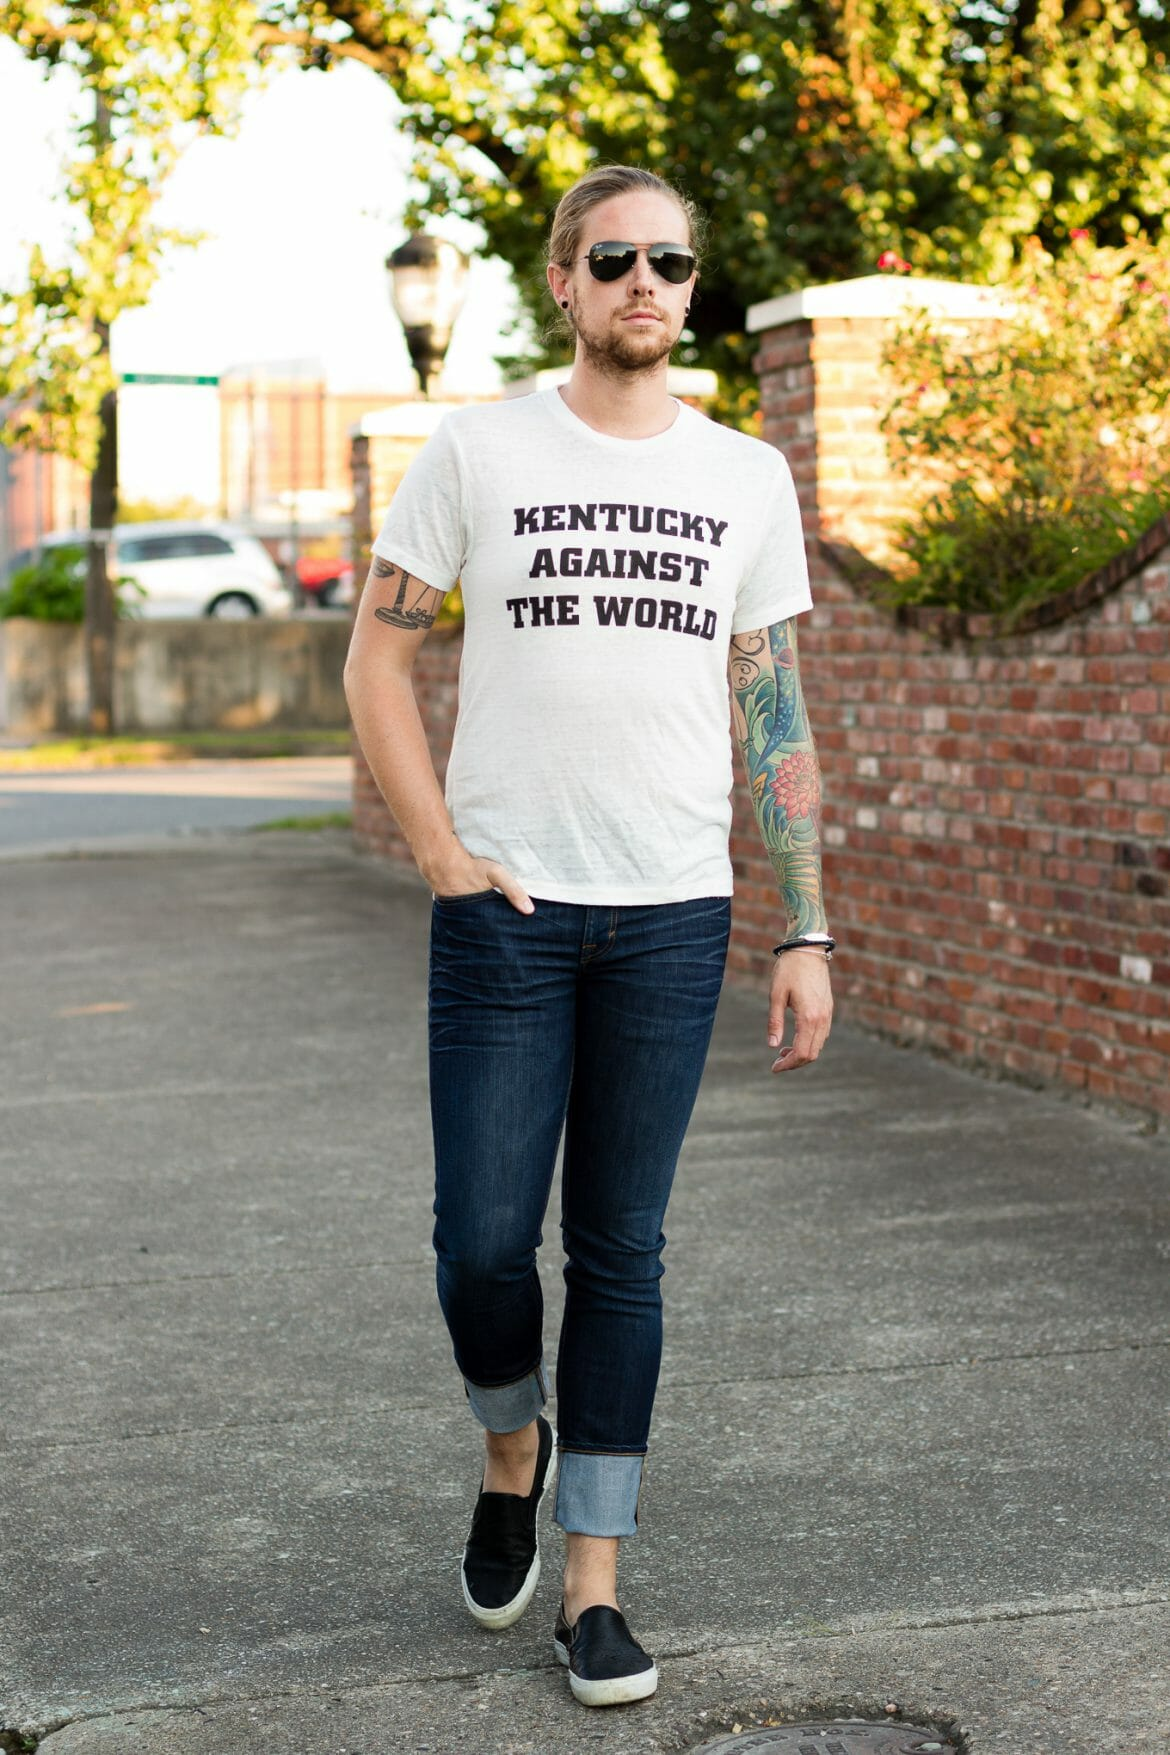 2Nostalgik, kentucky, louisville, kentucky against the world, mens fashion